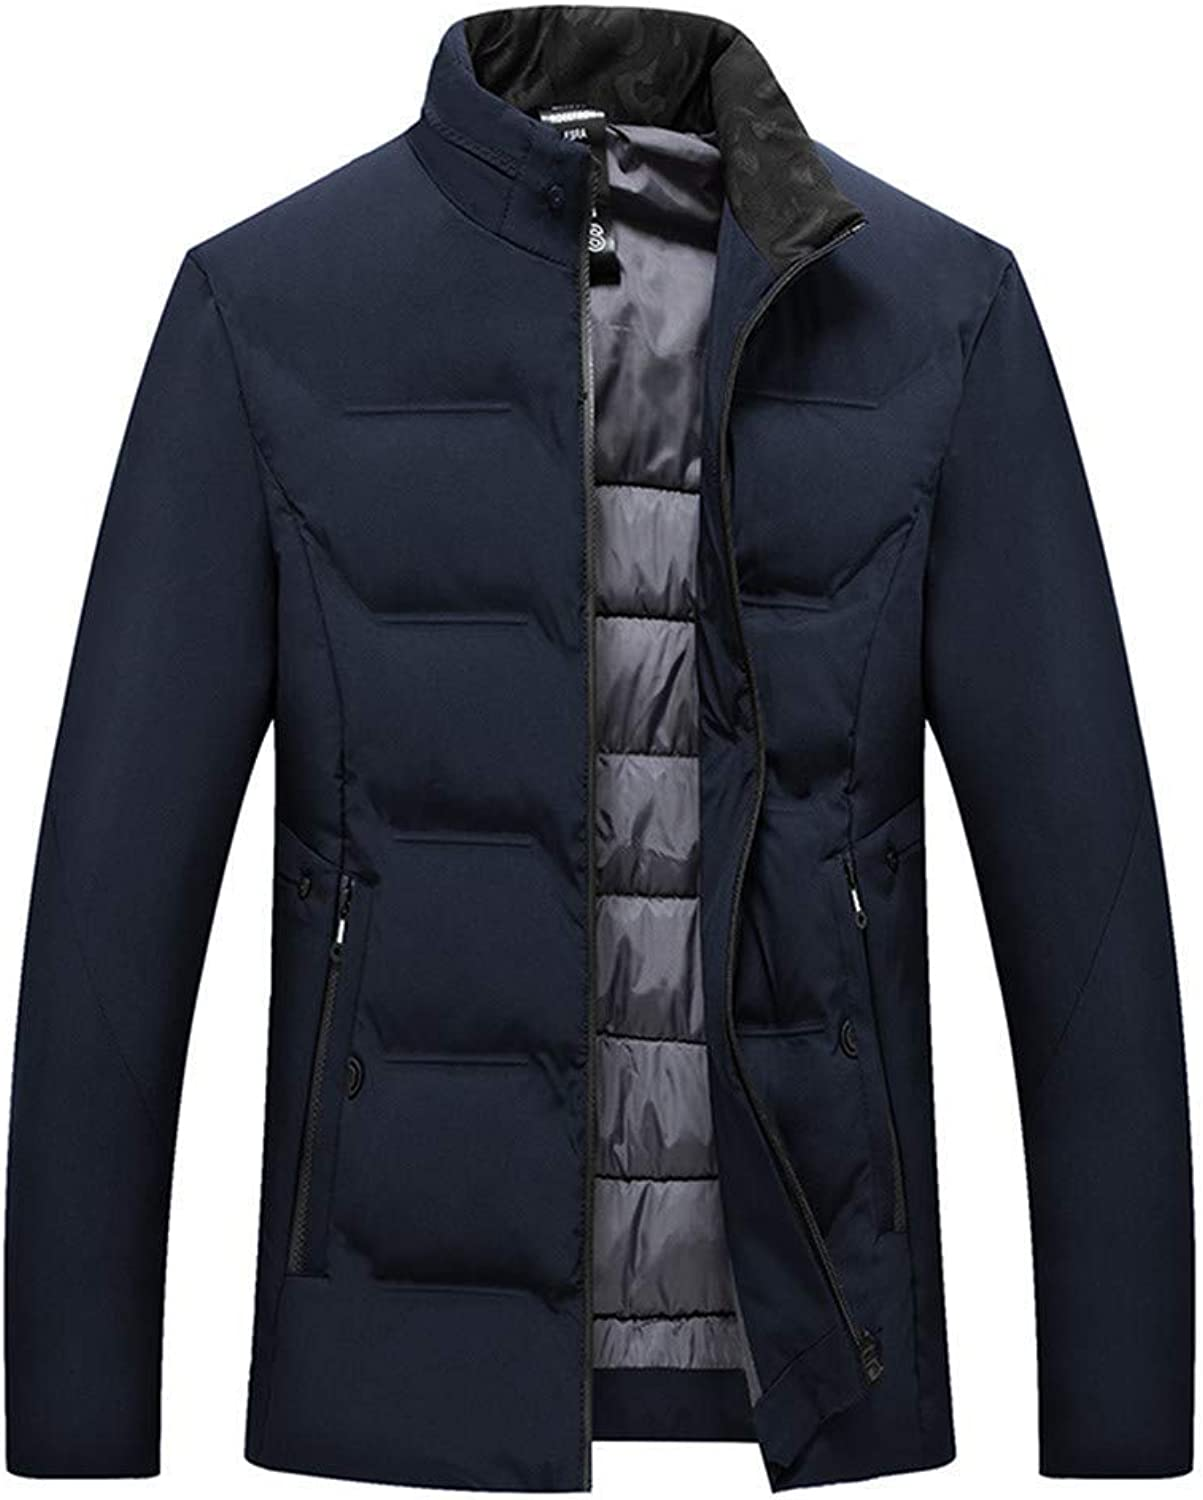 Warm Outerwear Mens Down Jacket,Casual Thermal Down Coat Slim Fit Outerwear Puffer Coat Top (color   Navy, Size   Large)